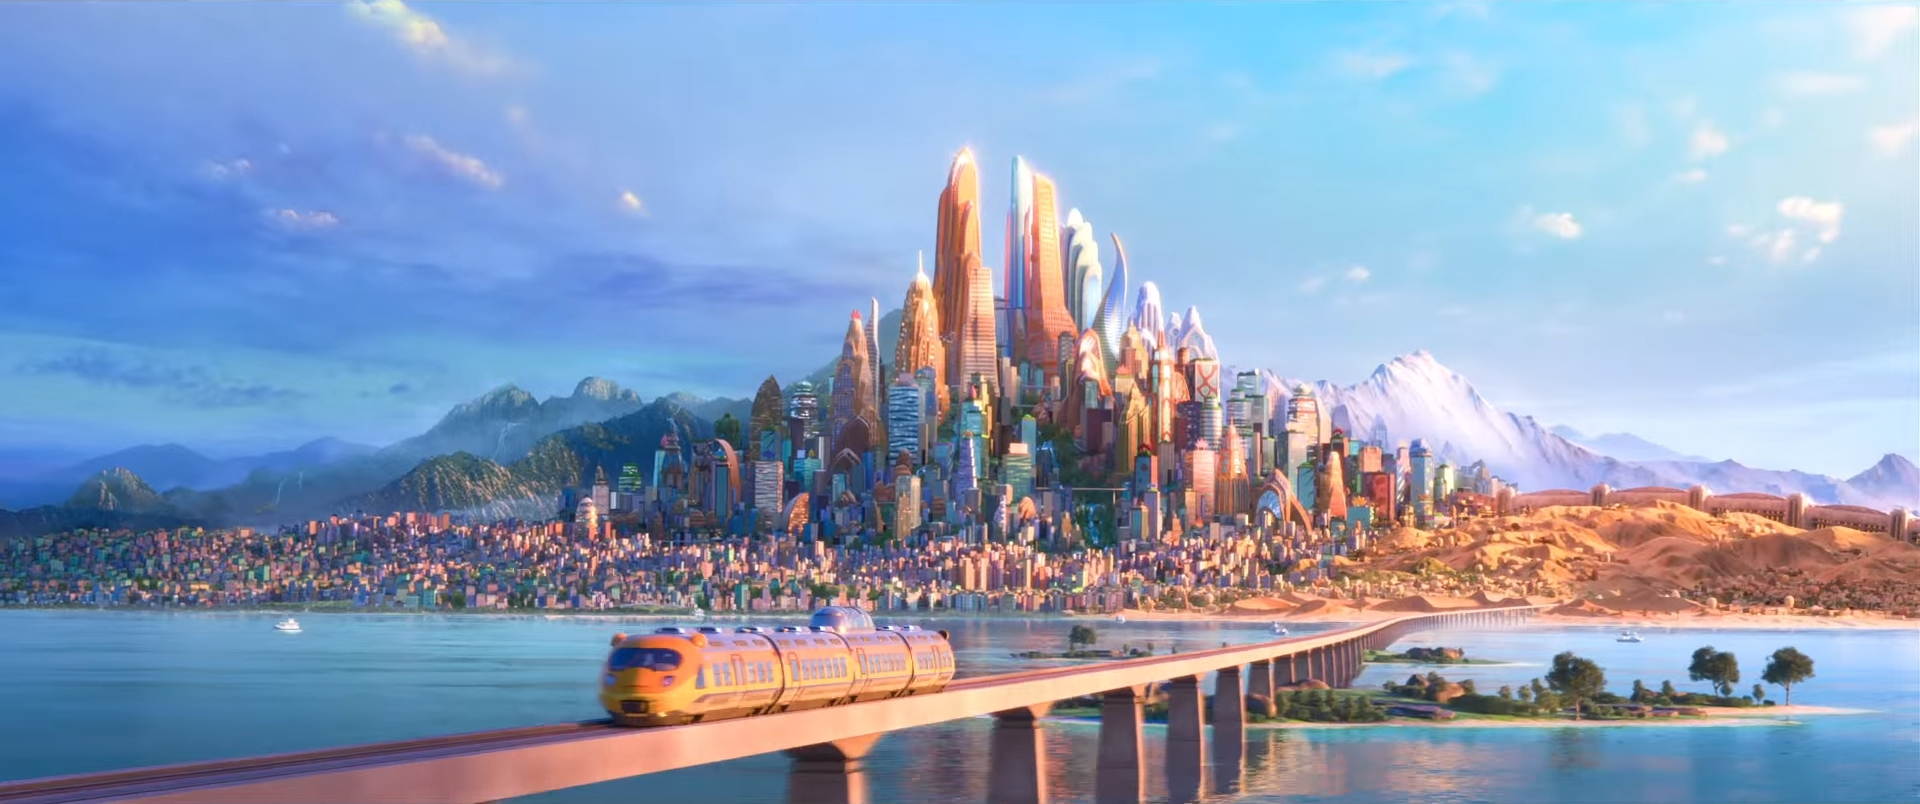 Image of the city of Zootopia Disney